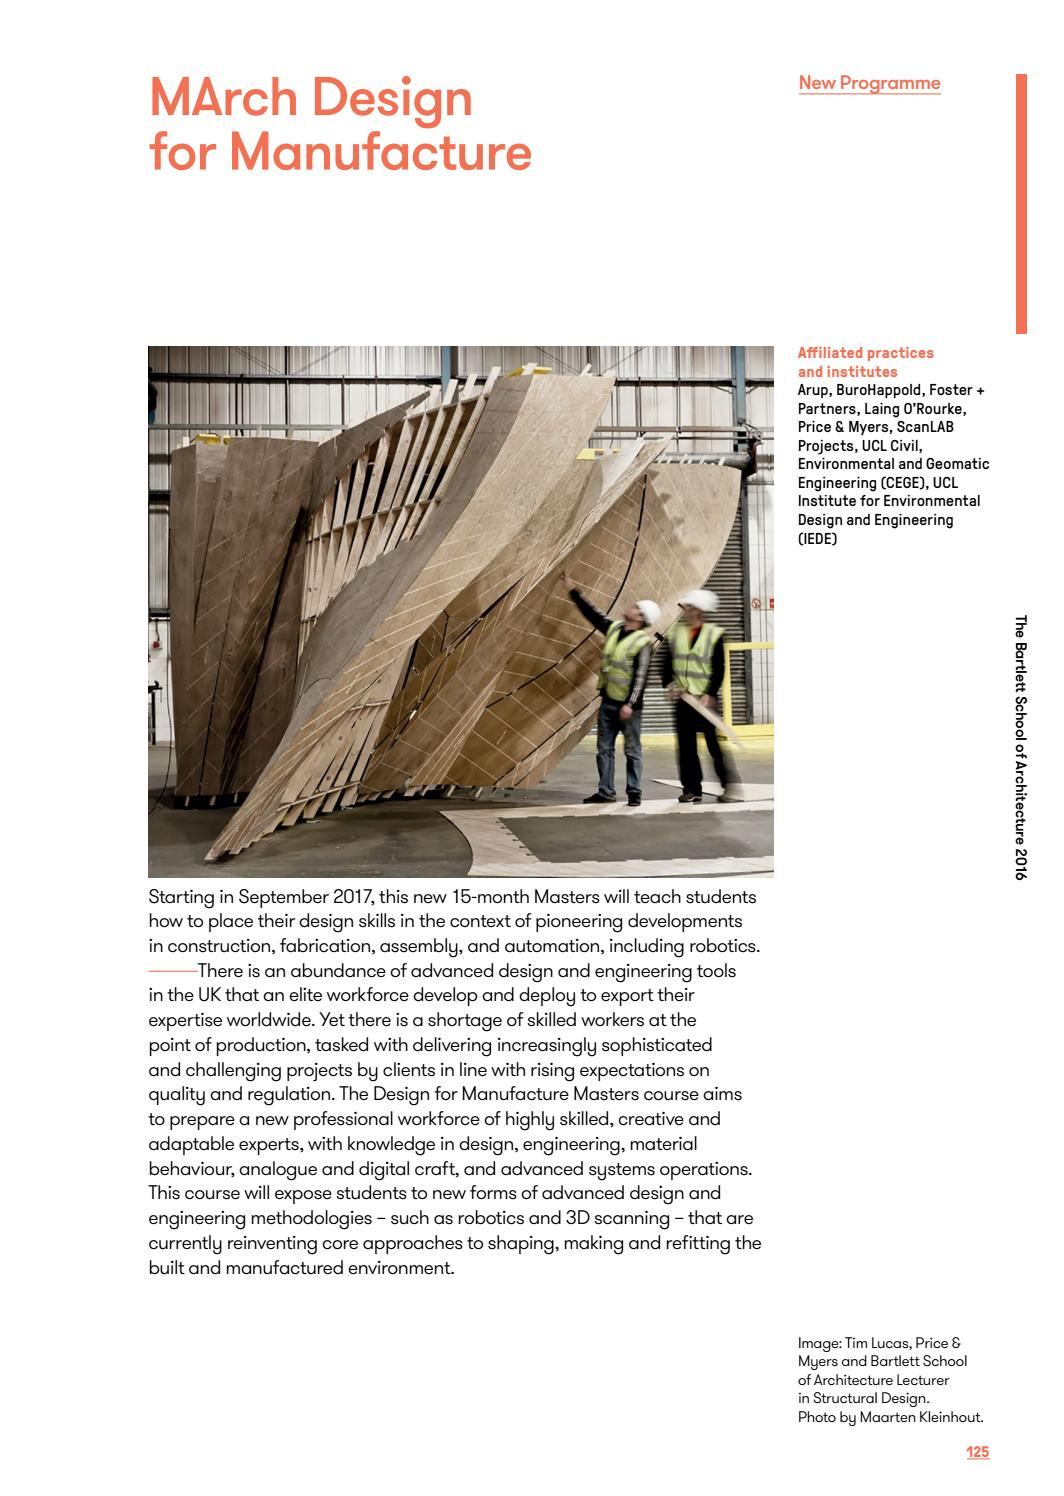 March Architectural Design Ad 2016 By The Bartlett School Of Architecture Ucl Issuu